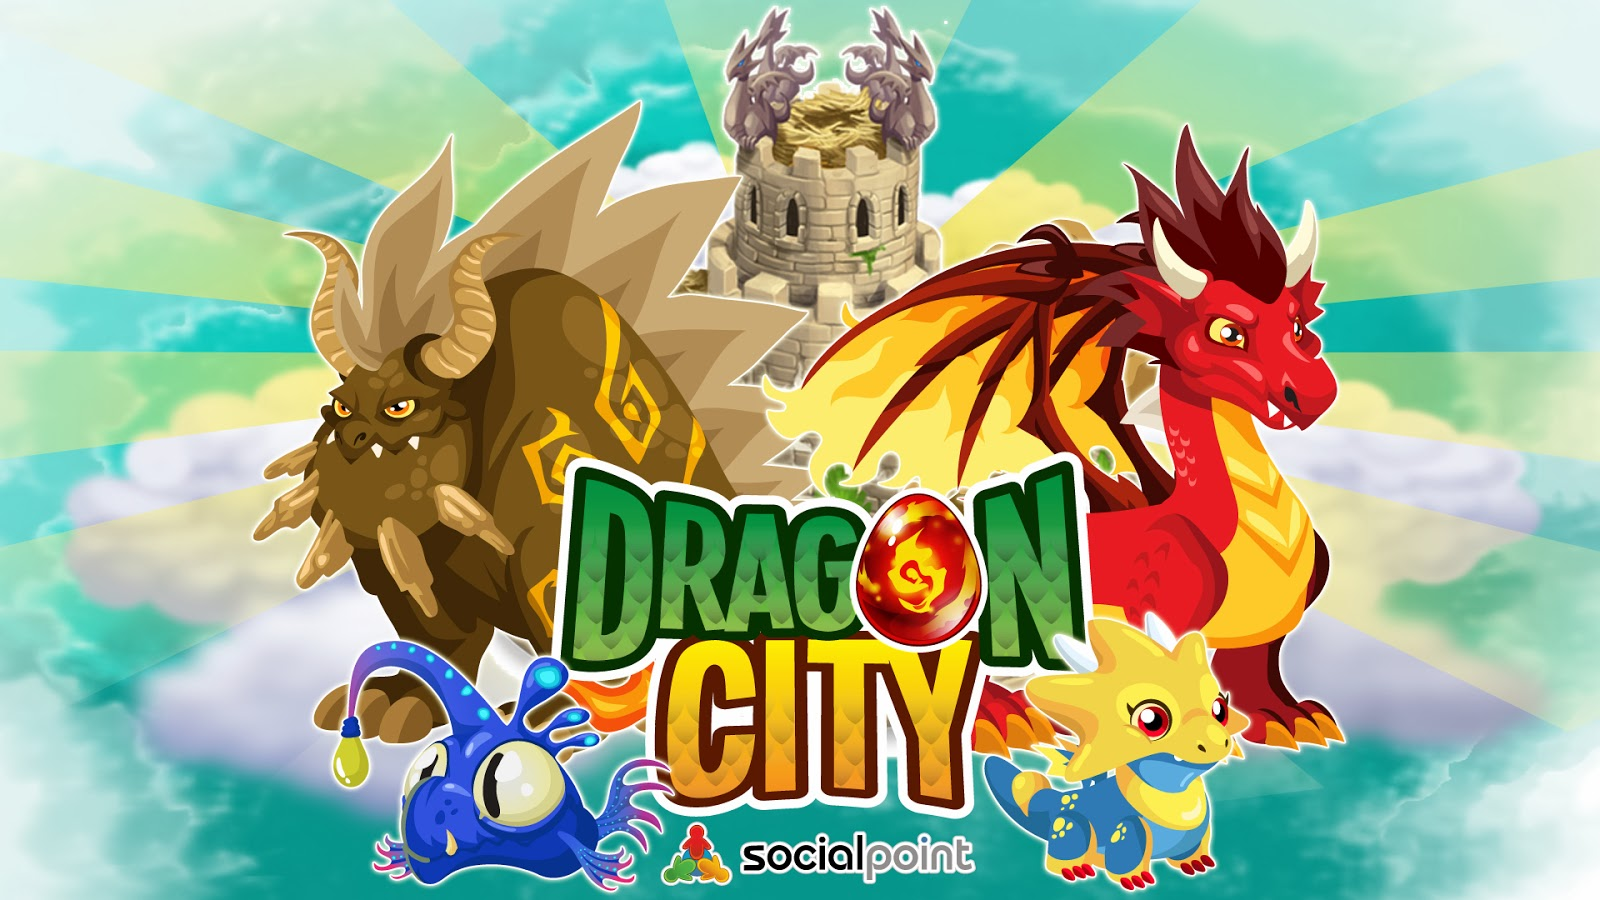 Hackear y Engañar: Hackear Dragon City - Trucos para Dragon City